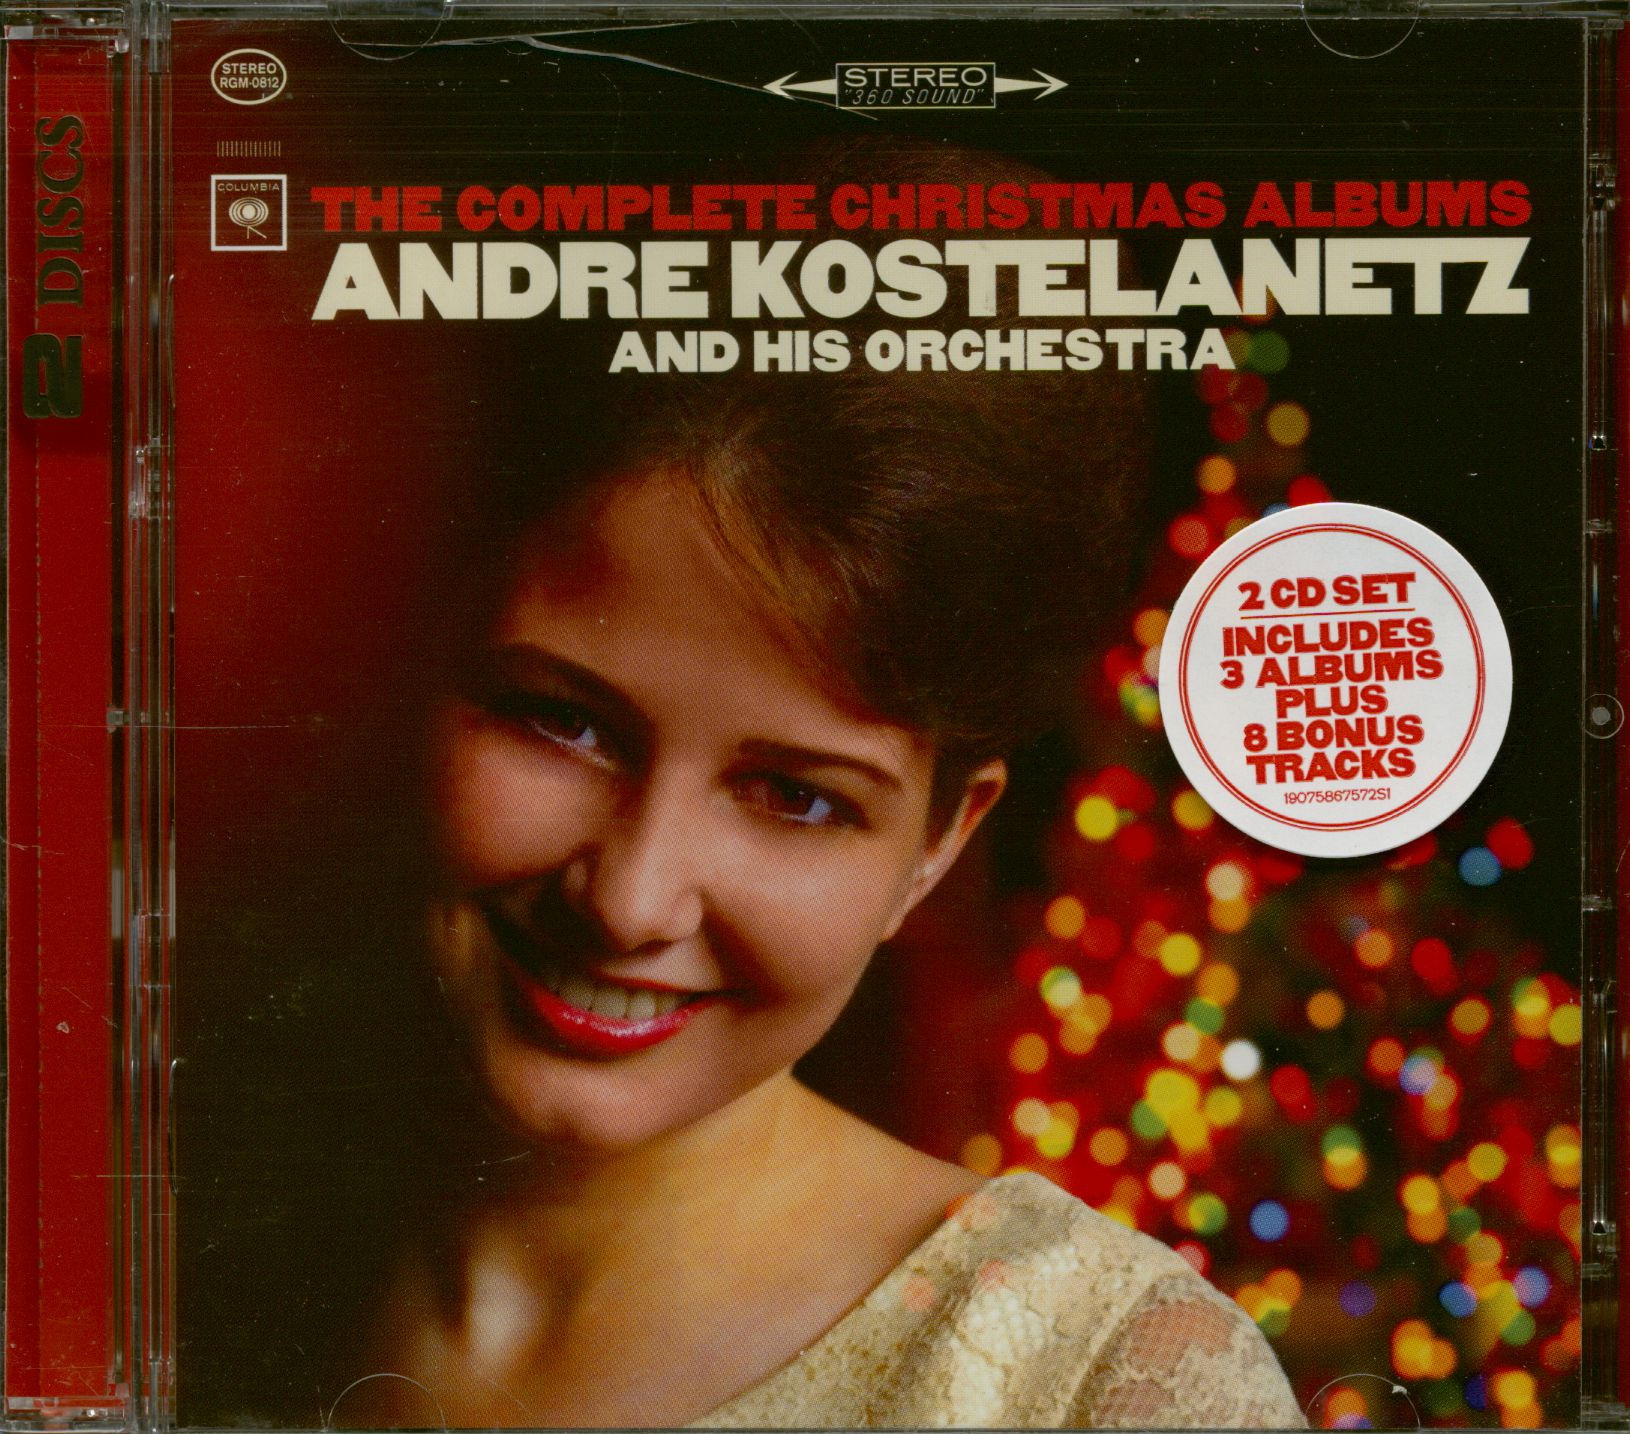 Andre Kostelanetz And His Orchestra CD: The Complete Christmas ...